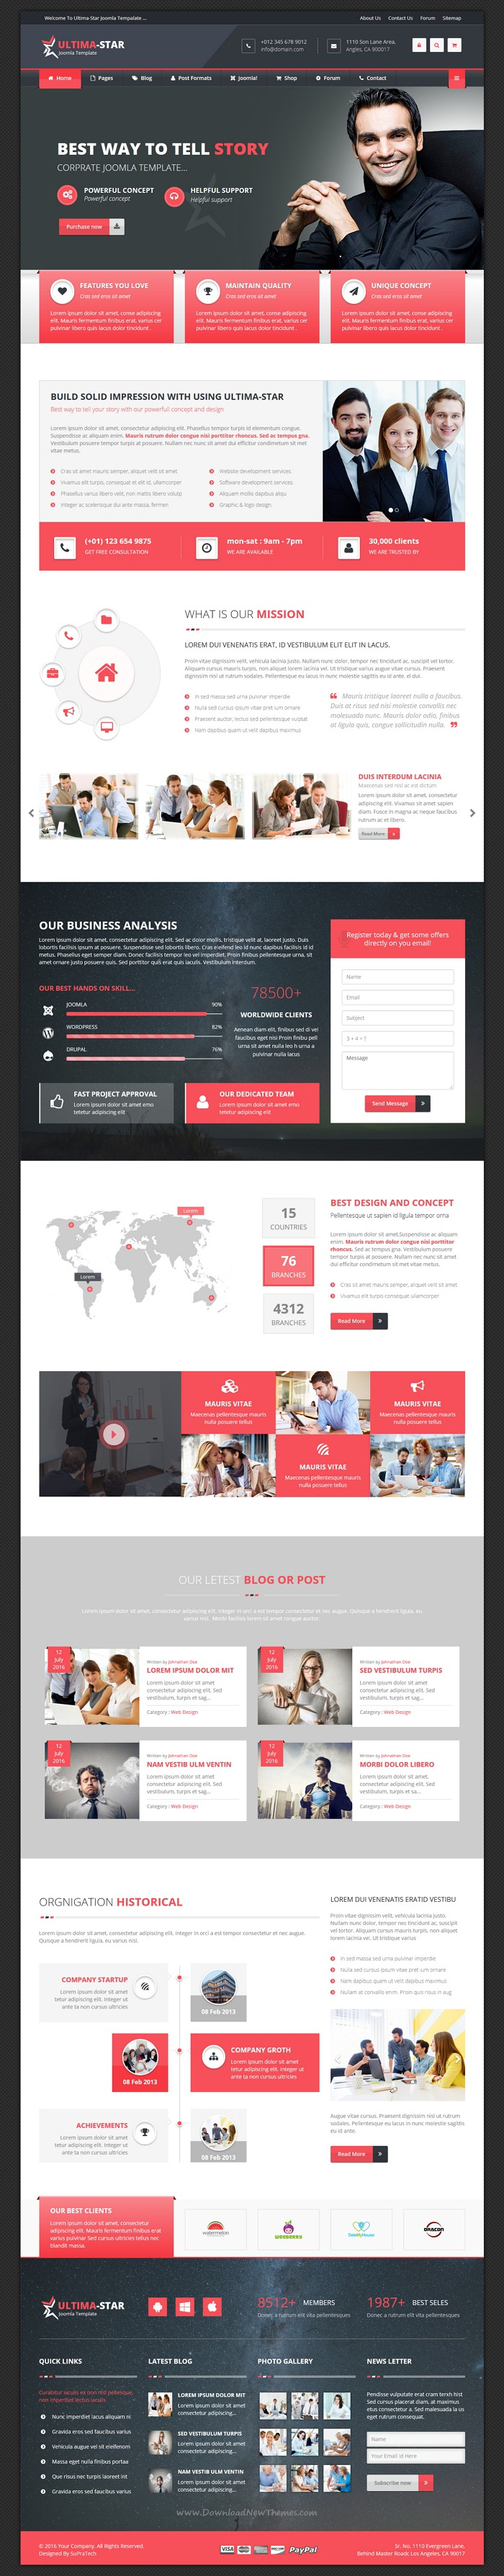 Ultima-star corporate joomla template | Pinterest | Template and ...